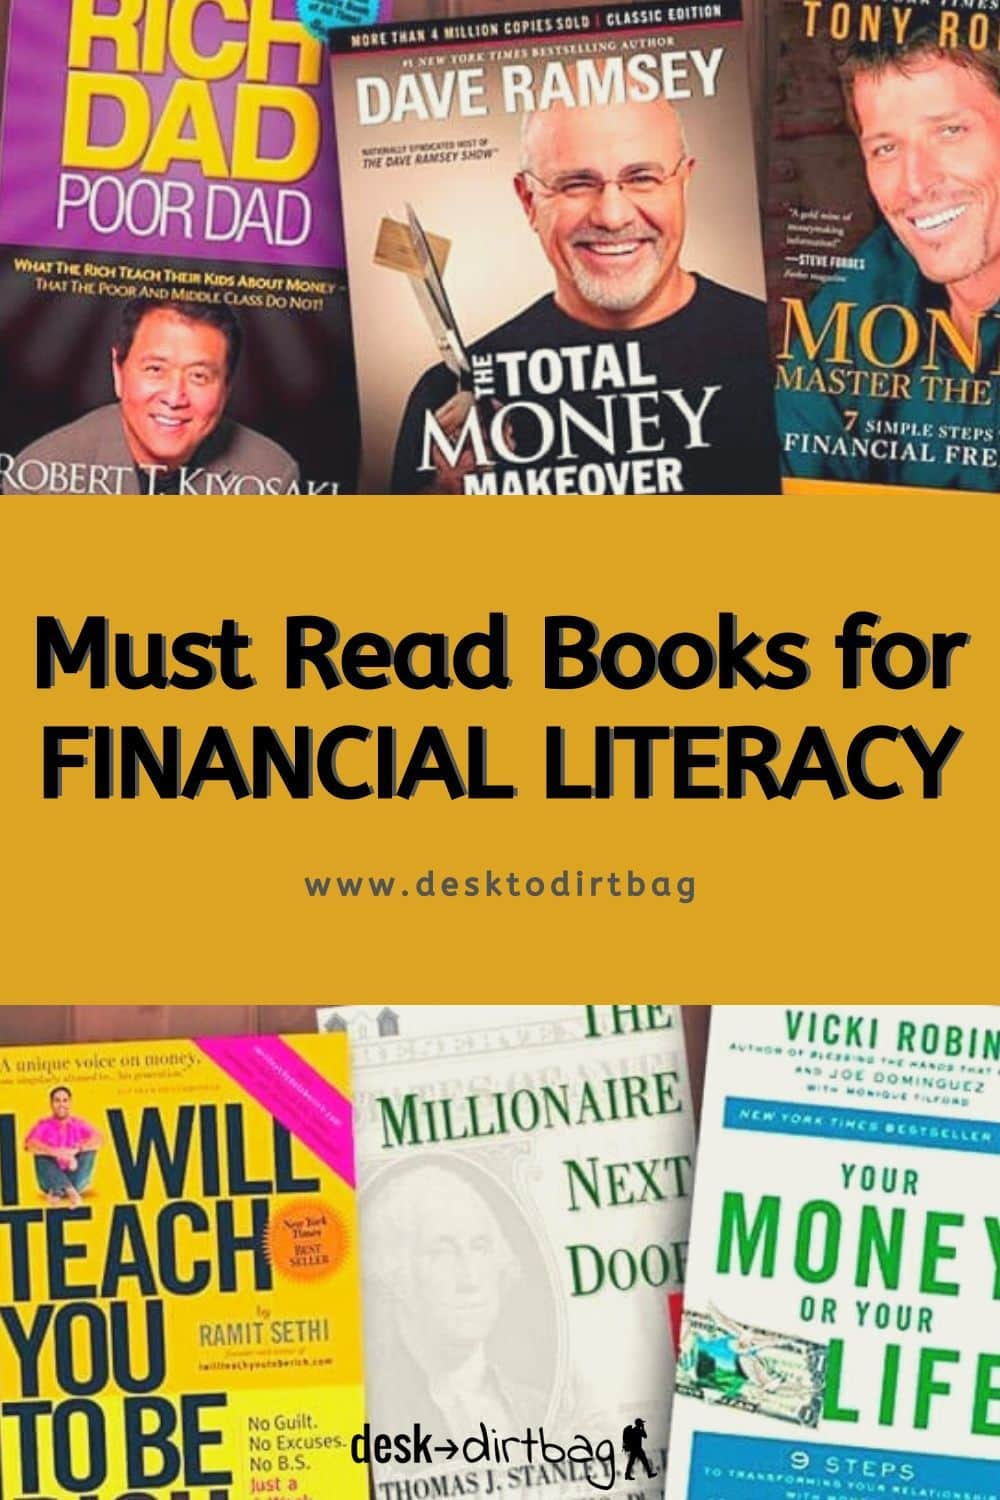 Take Control of Your Money: The Top Financial Literacy Books location-independence, budget-and-finance